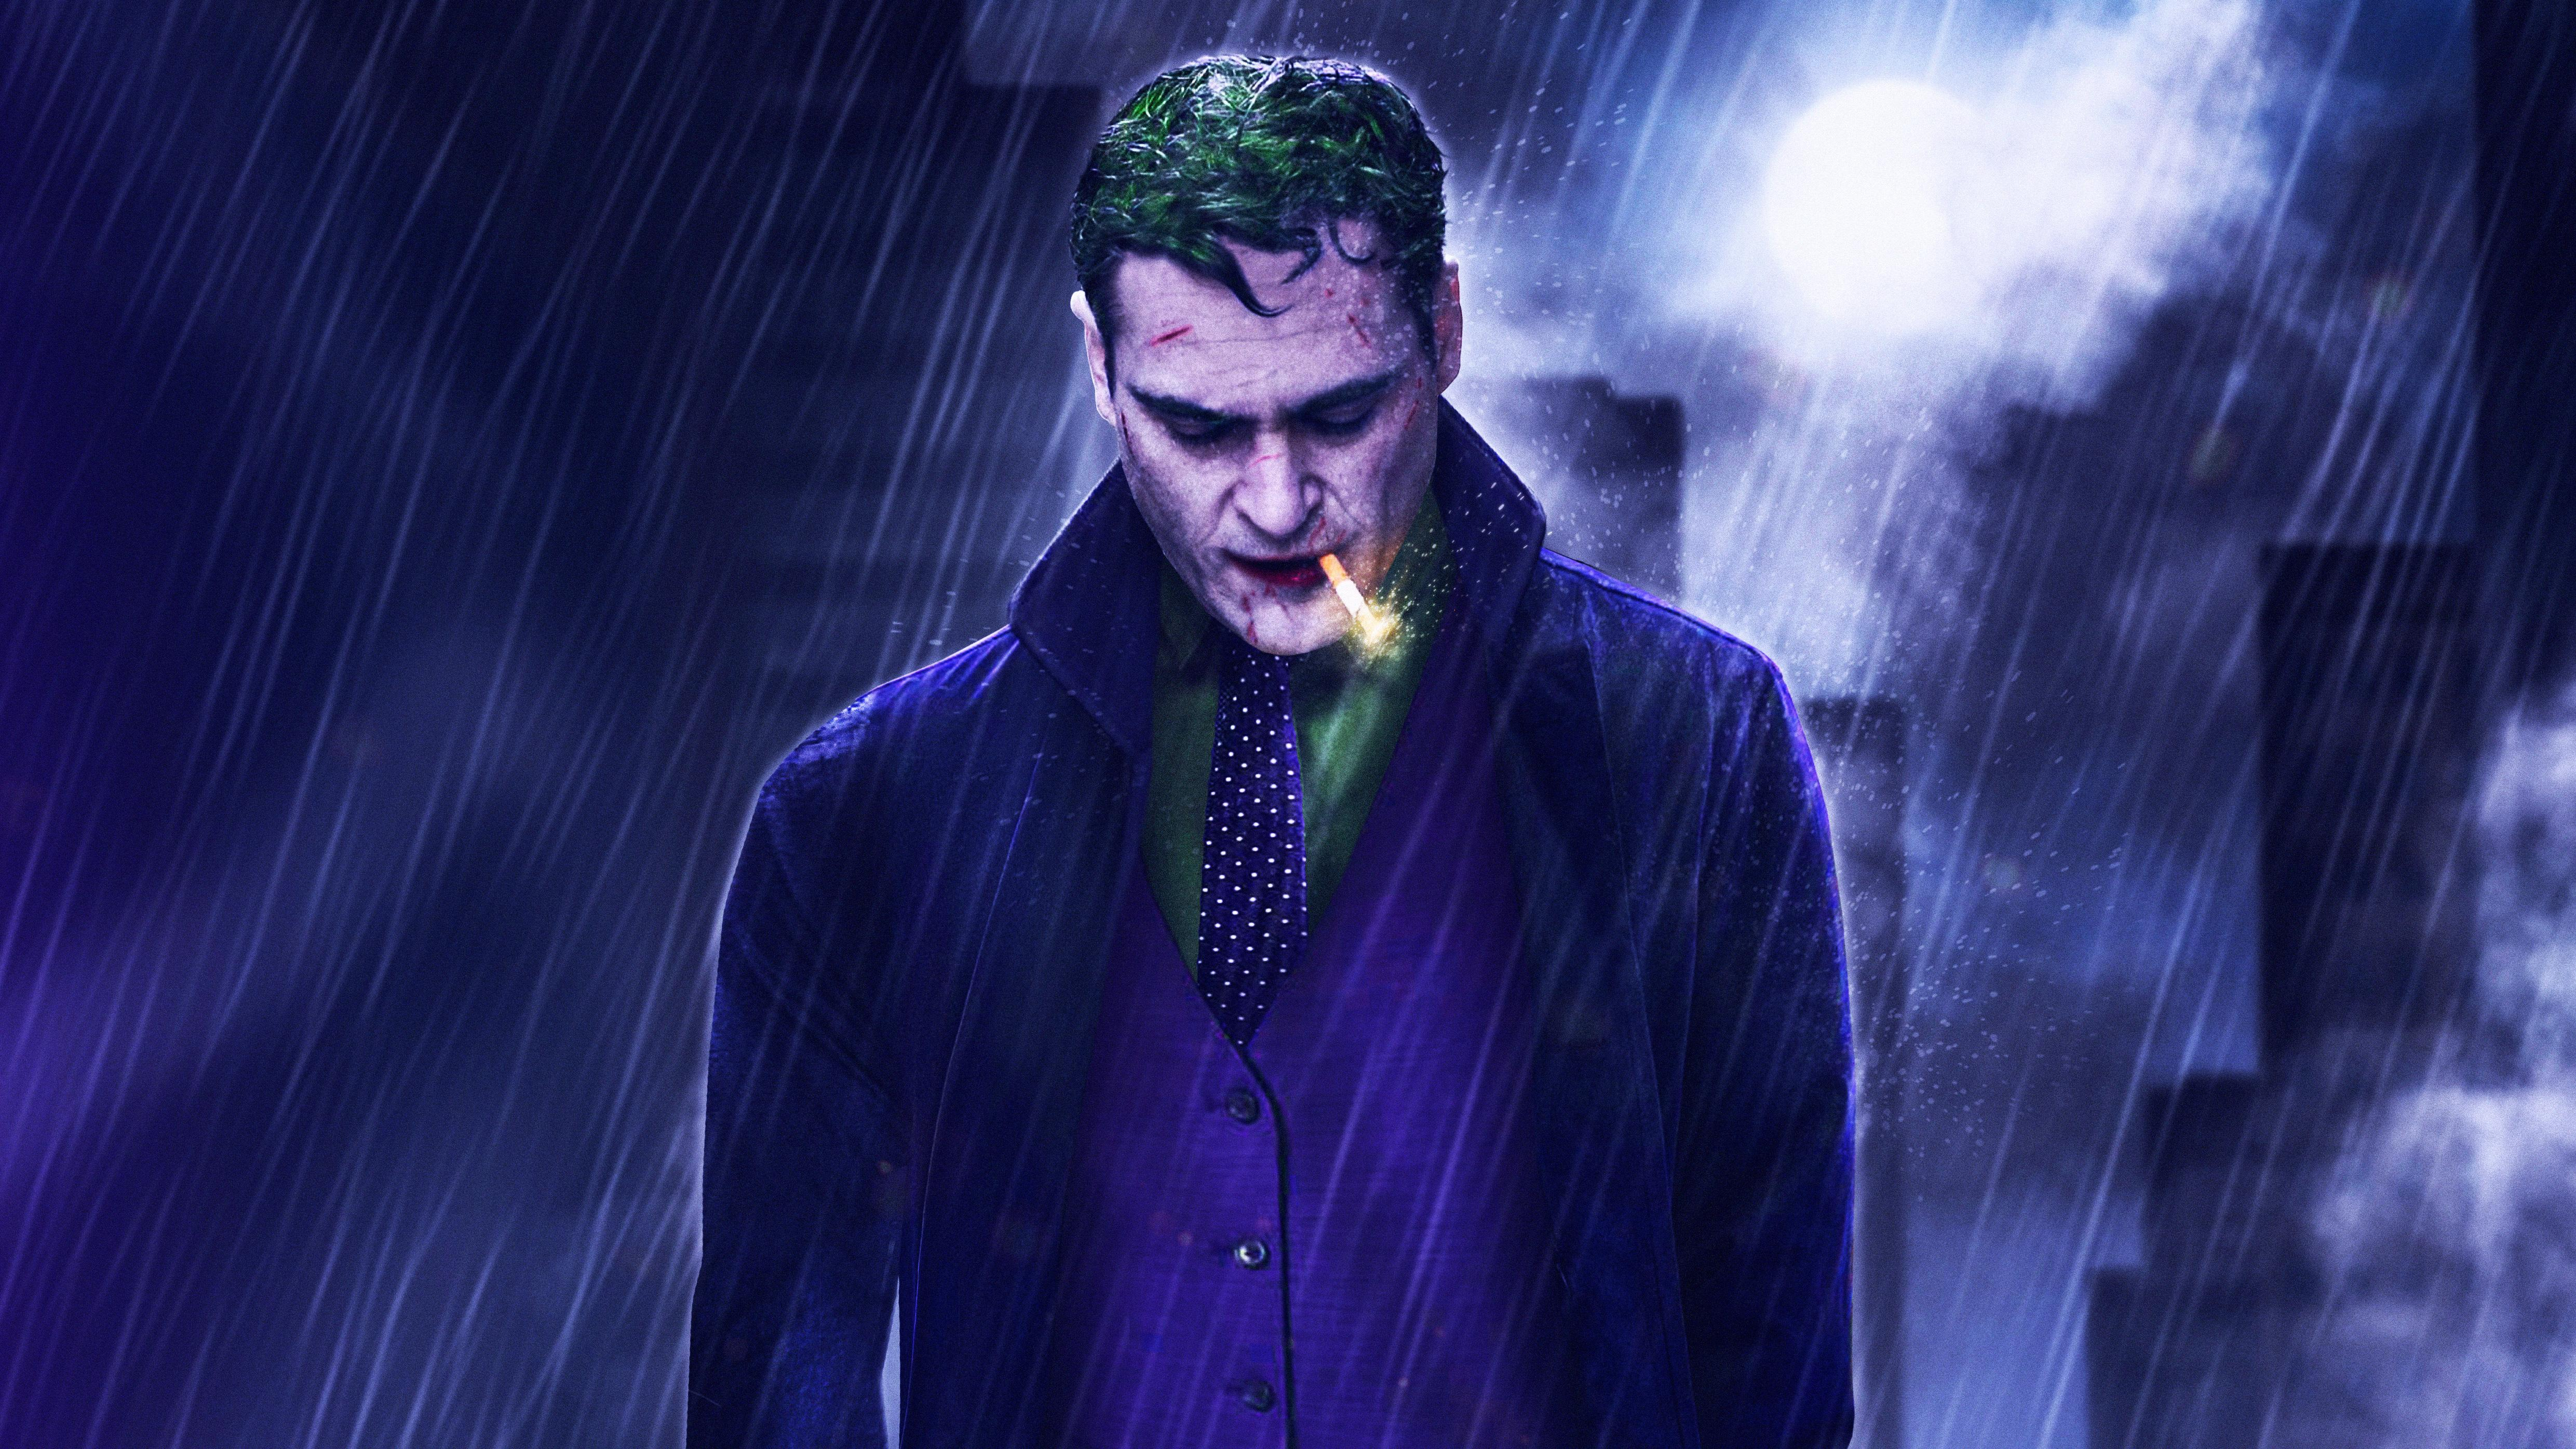 Joaquin Phoenix Joker 2019 Movie 5k, HD Movies, 4k Wallpapers